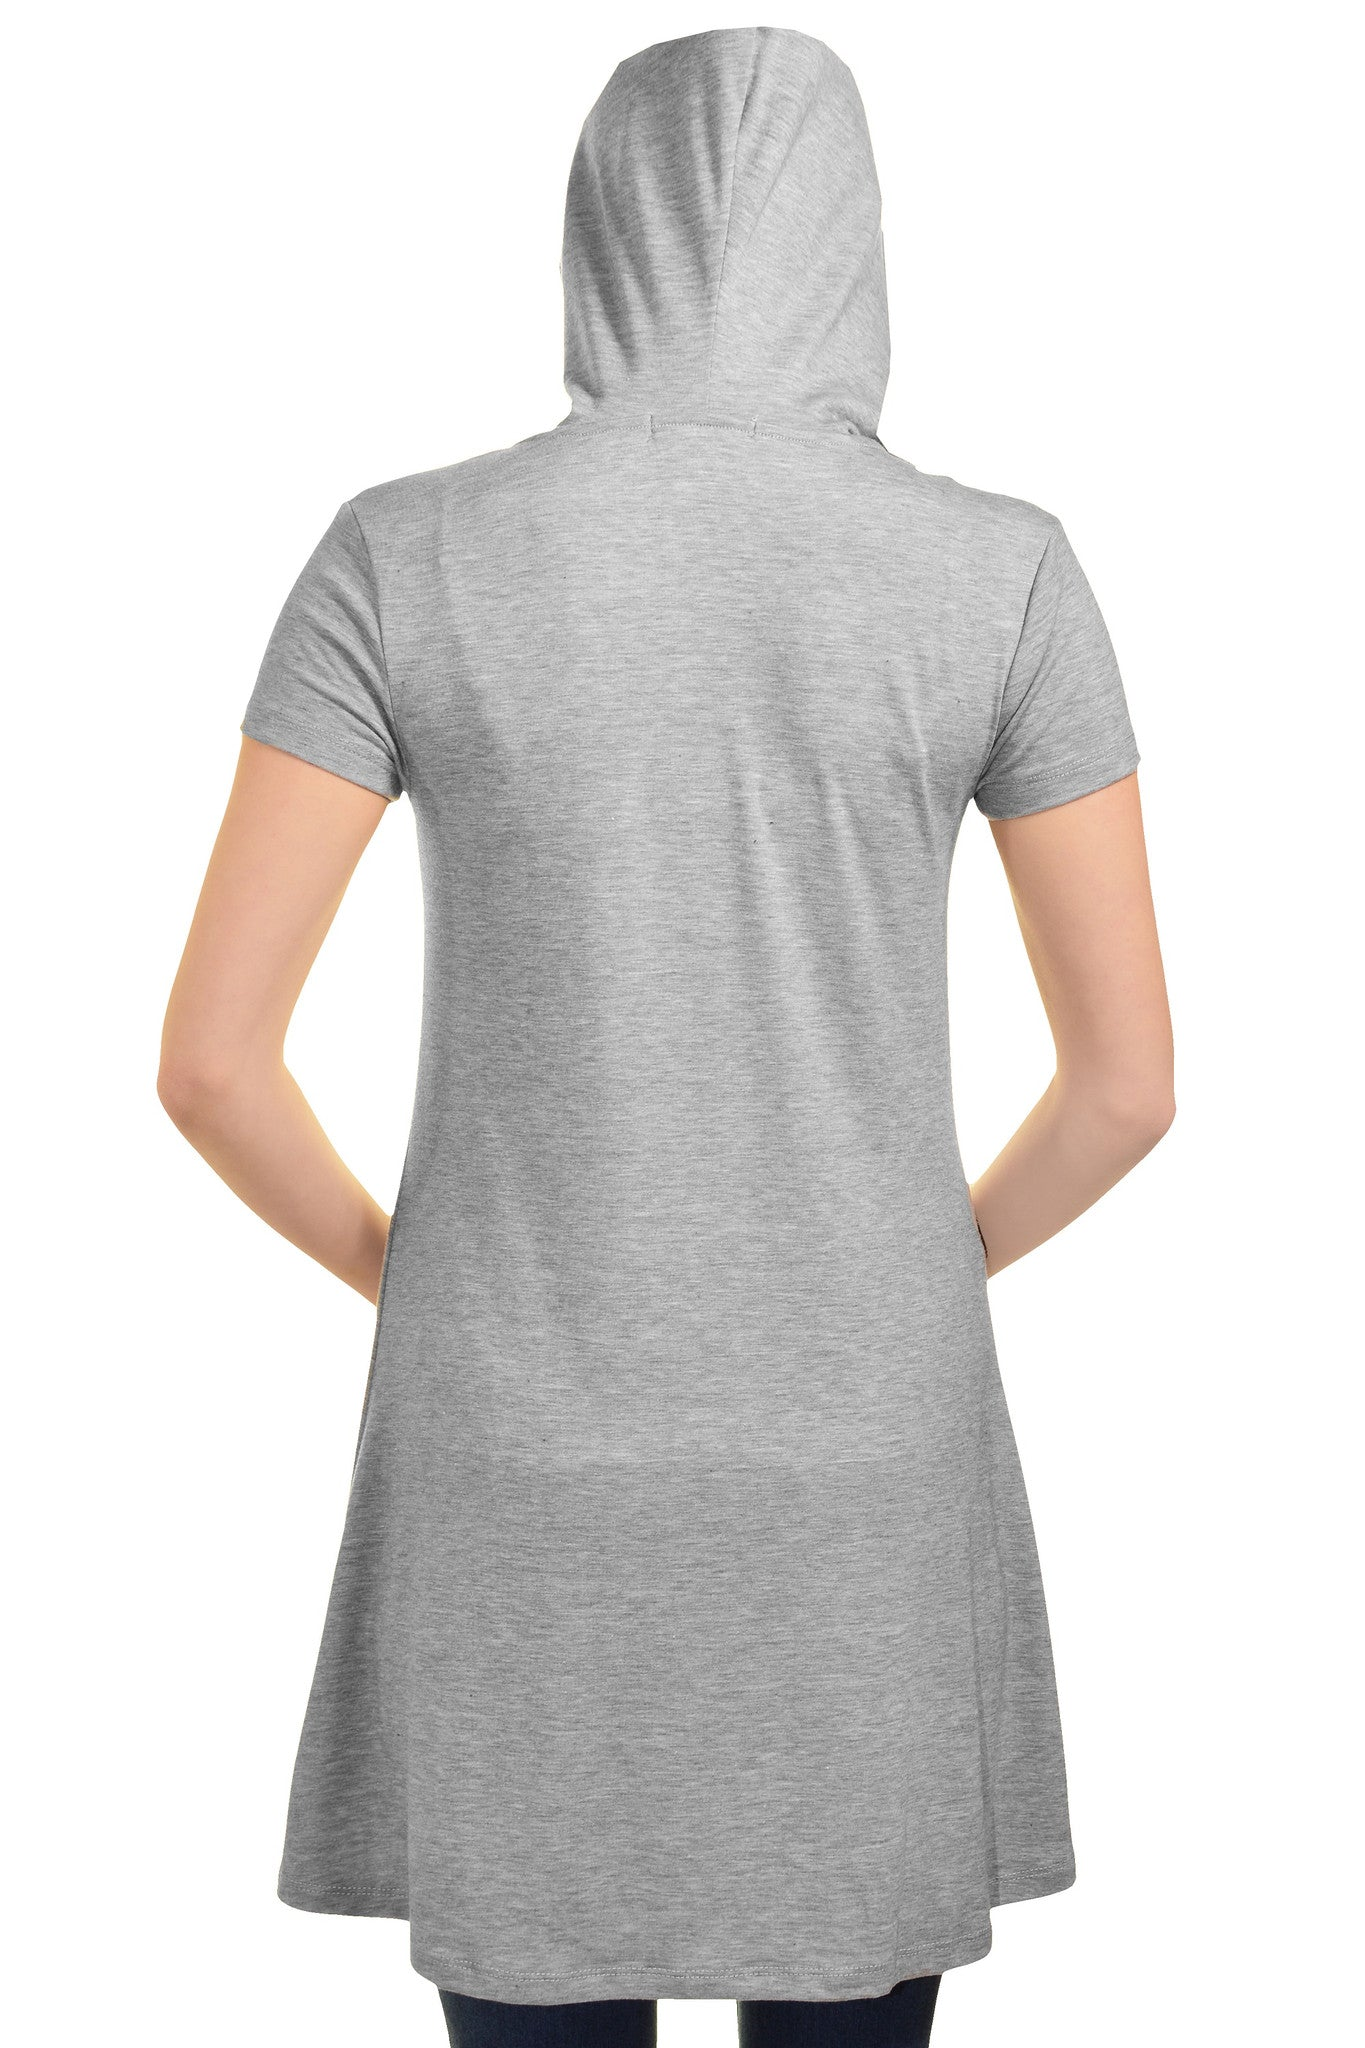 Ellie & Kate Hooded T-Shirt Dress (Heather Gray)